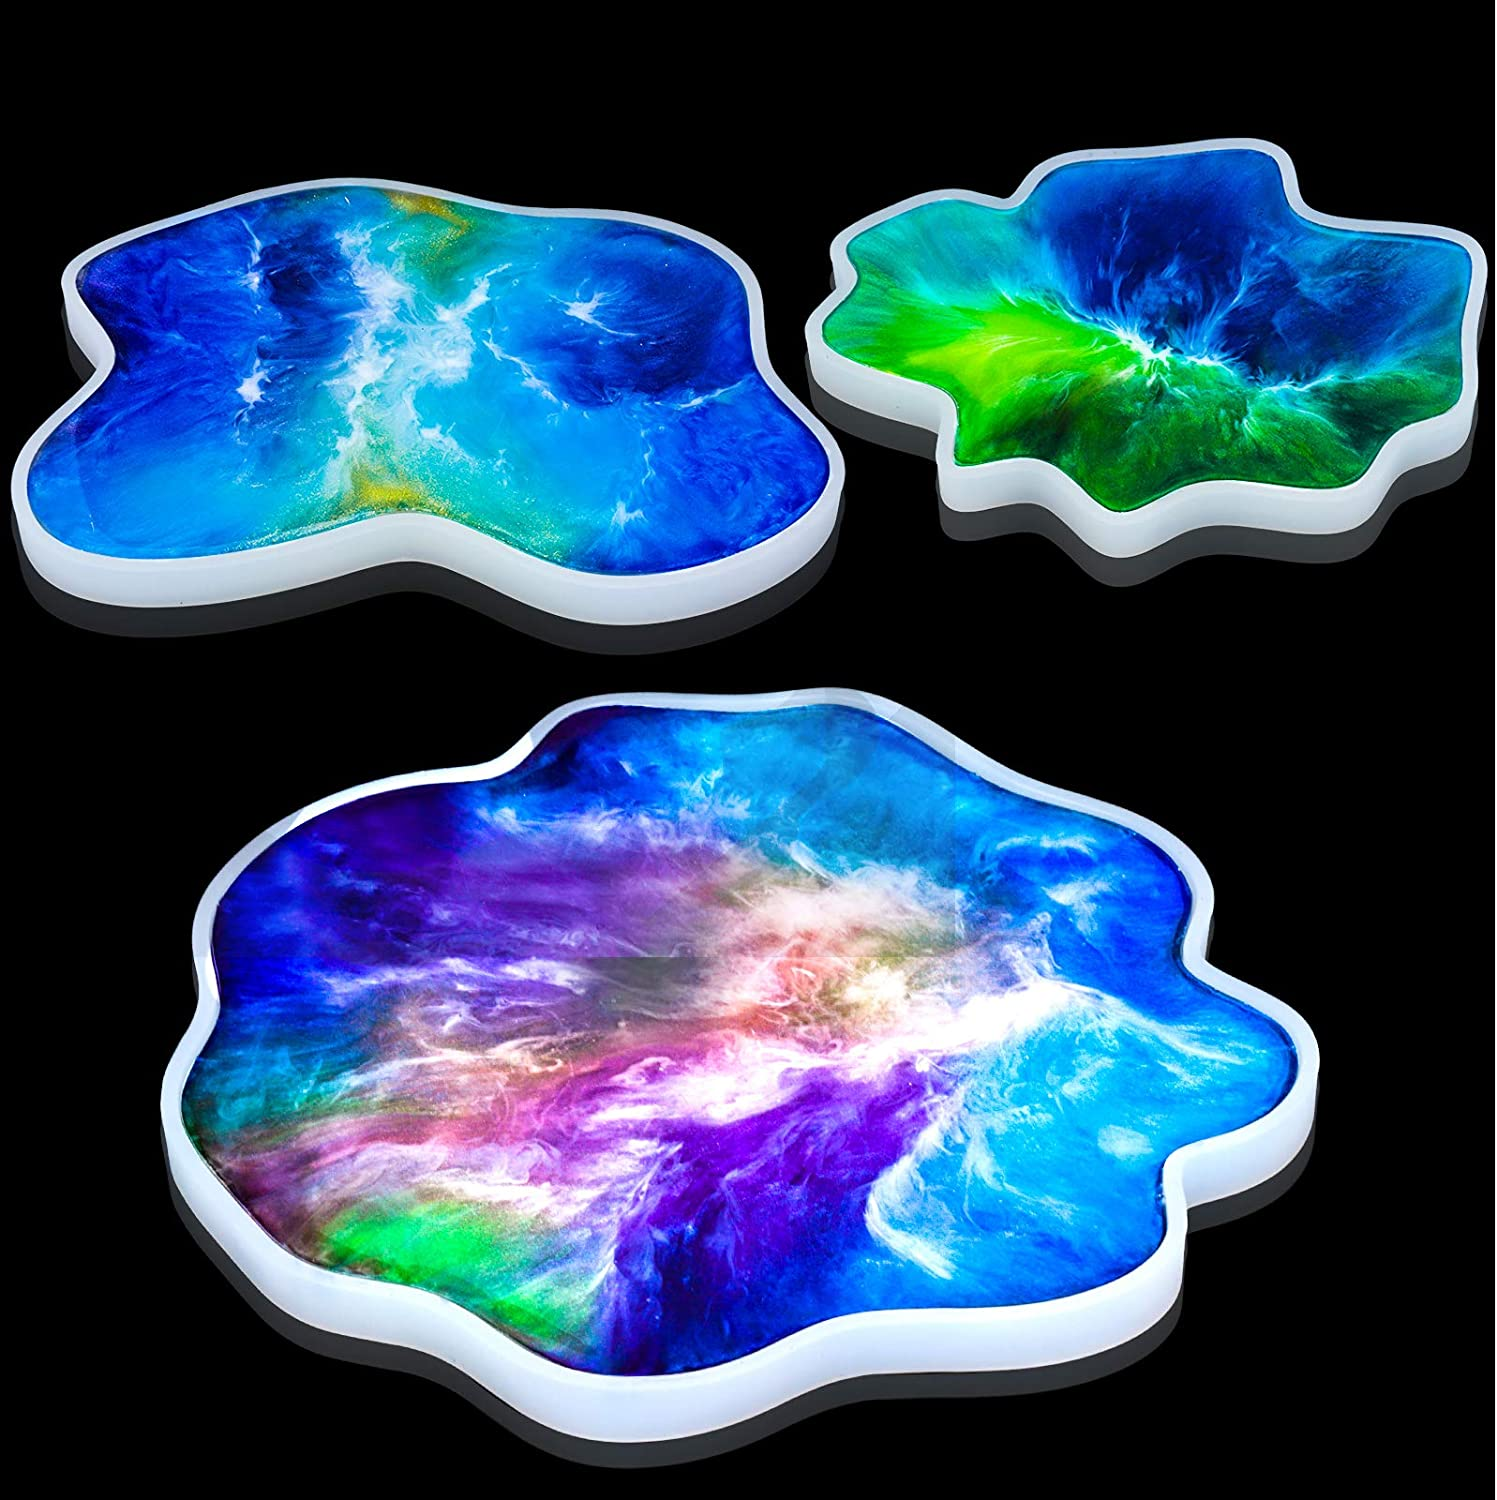 Irregular Silicone Coaster Mold for Making Geode Coasters Agate Coasters Large /& Thick Resin Coaster Mold for Epoxy Resin and Polymer Clay Resin Easy Geode Coaster Mold